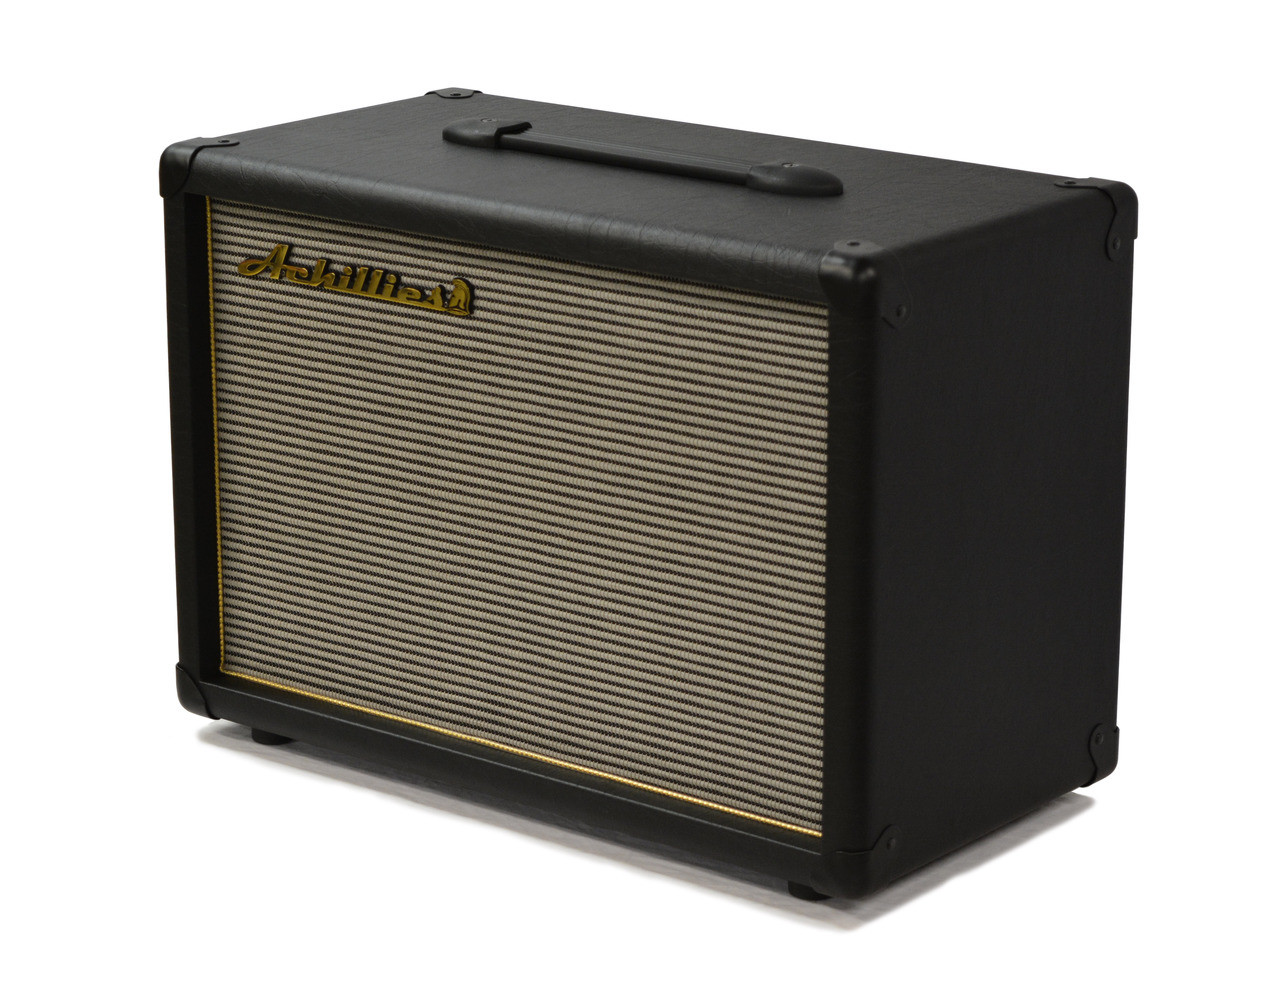 Creon 1x10 Guitar Speaker Cabinet